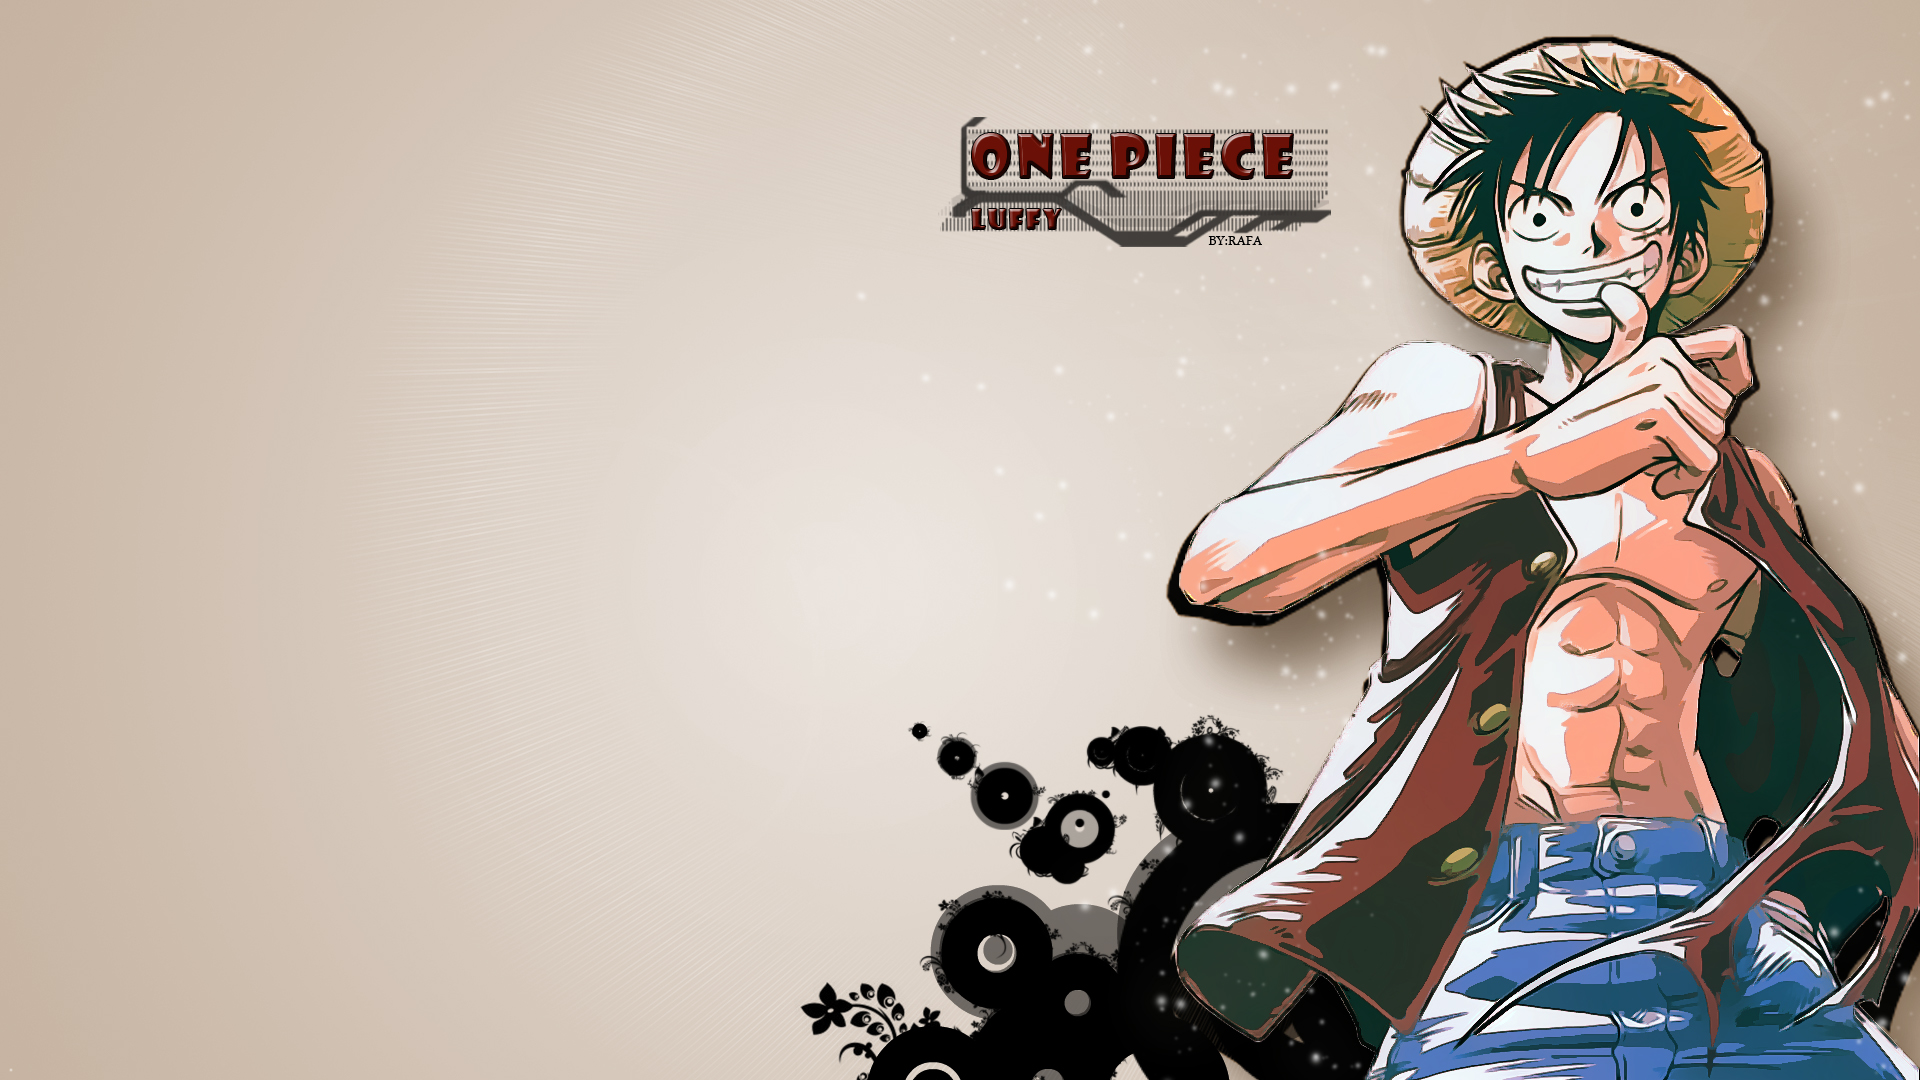 One Piece New World Wallpapers Top Free One Piece New World